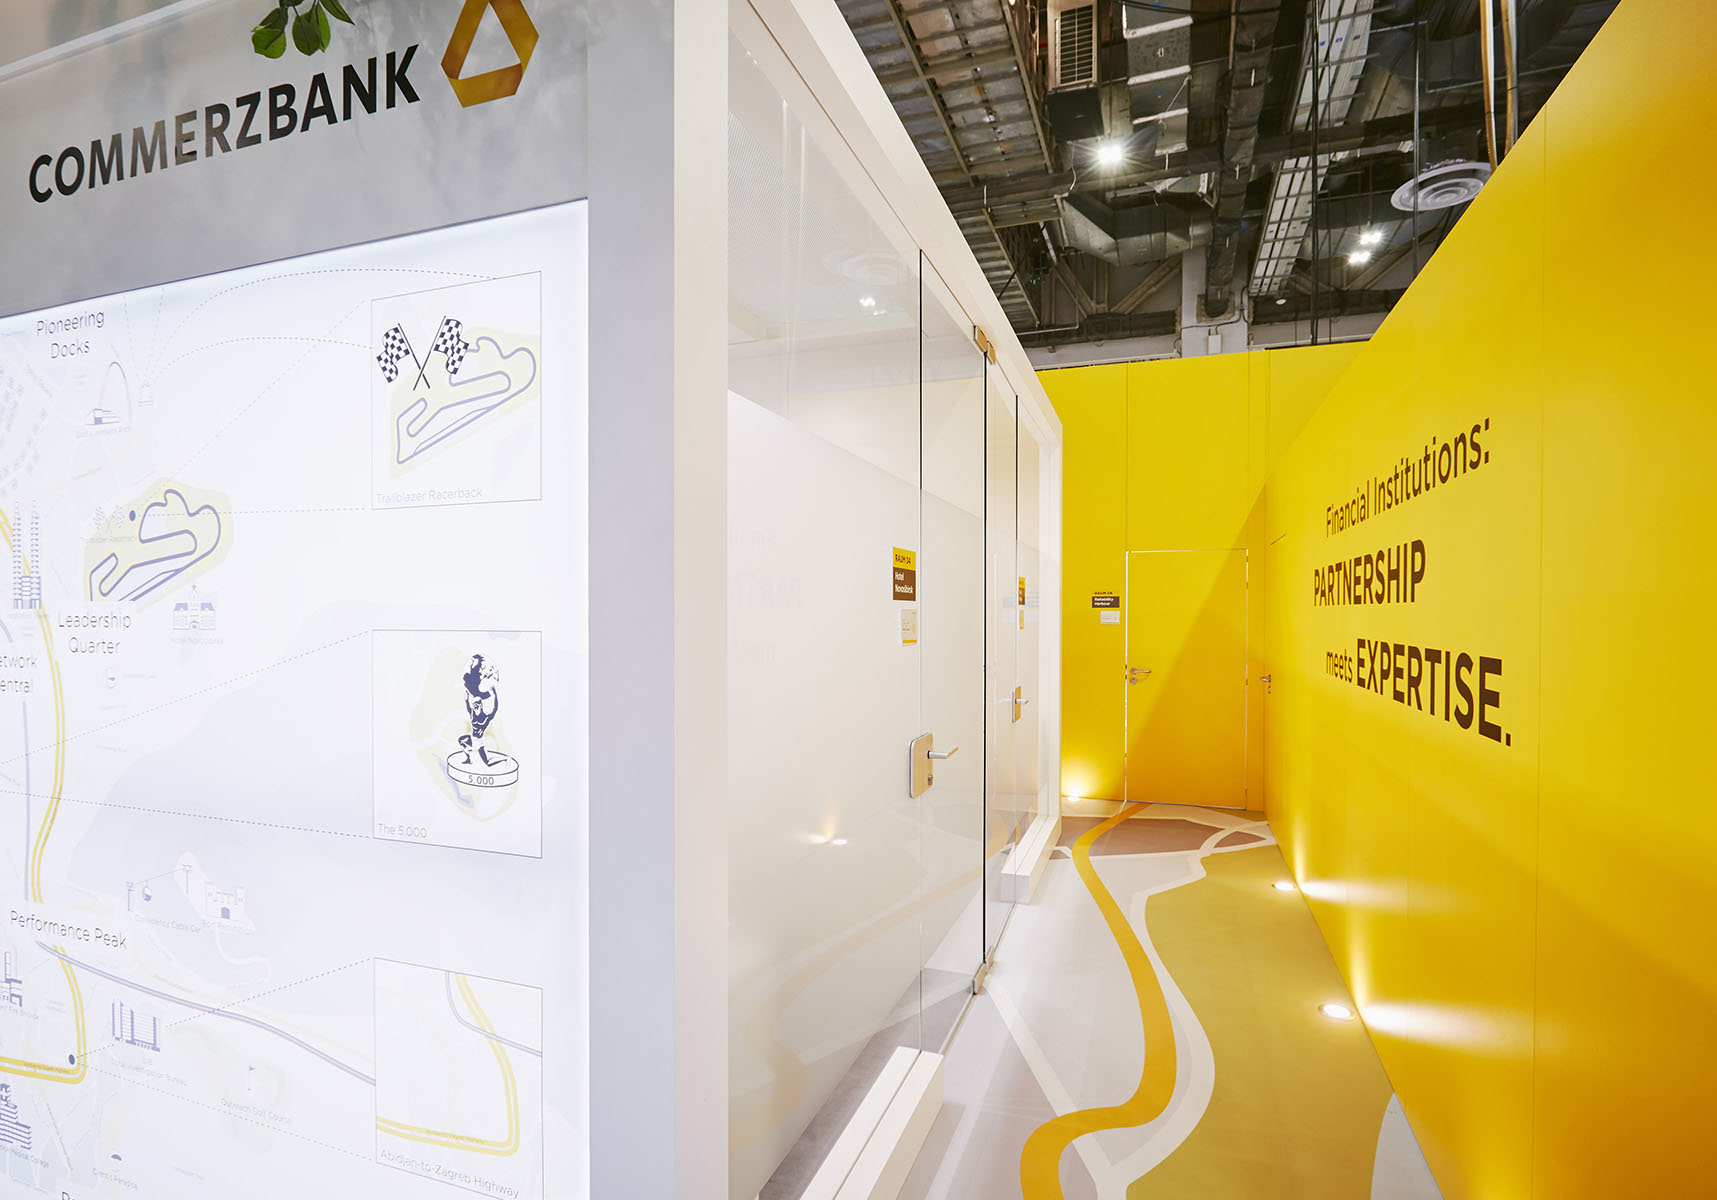 Commerzbank Messestand Sibos Singapur 2